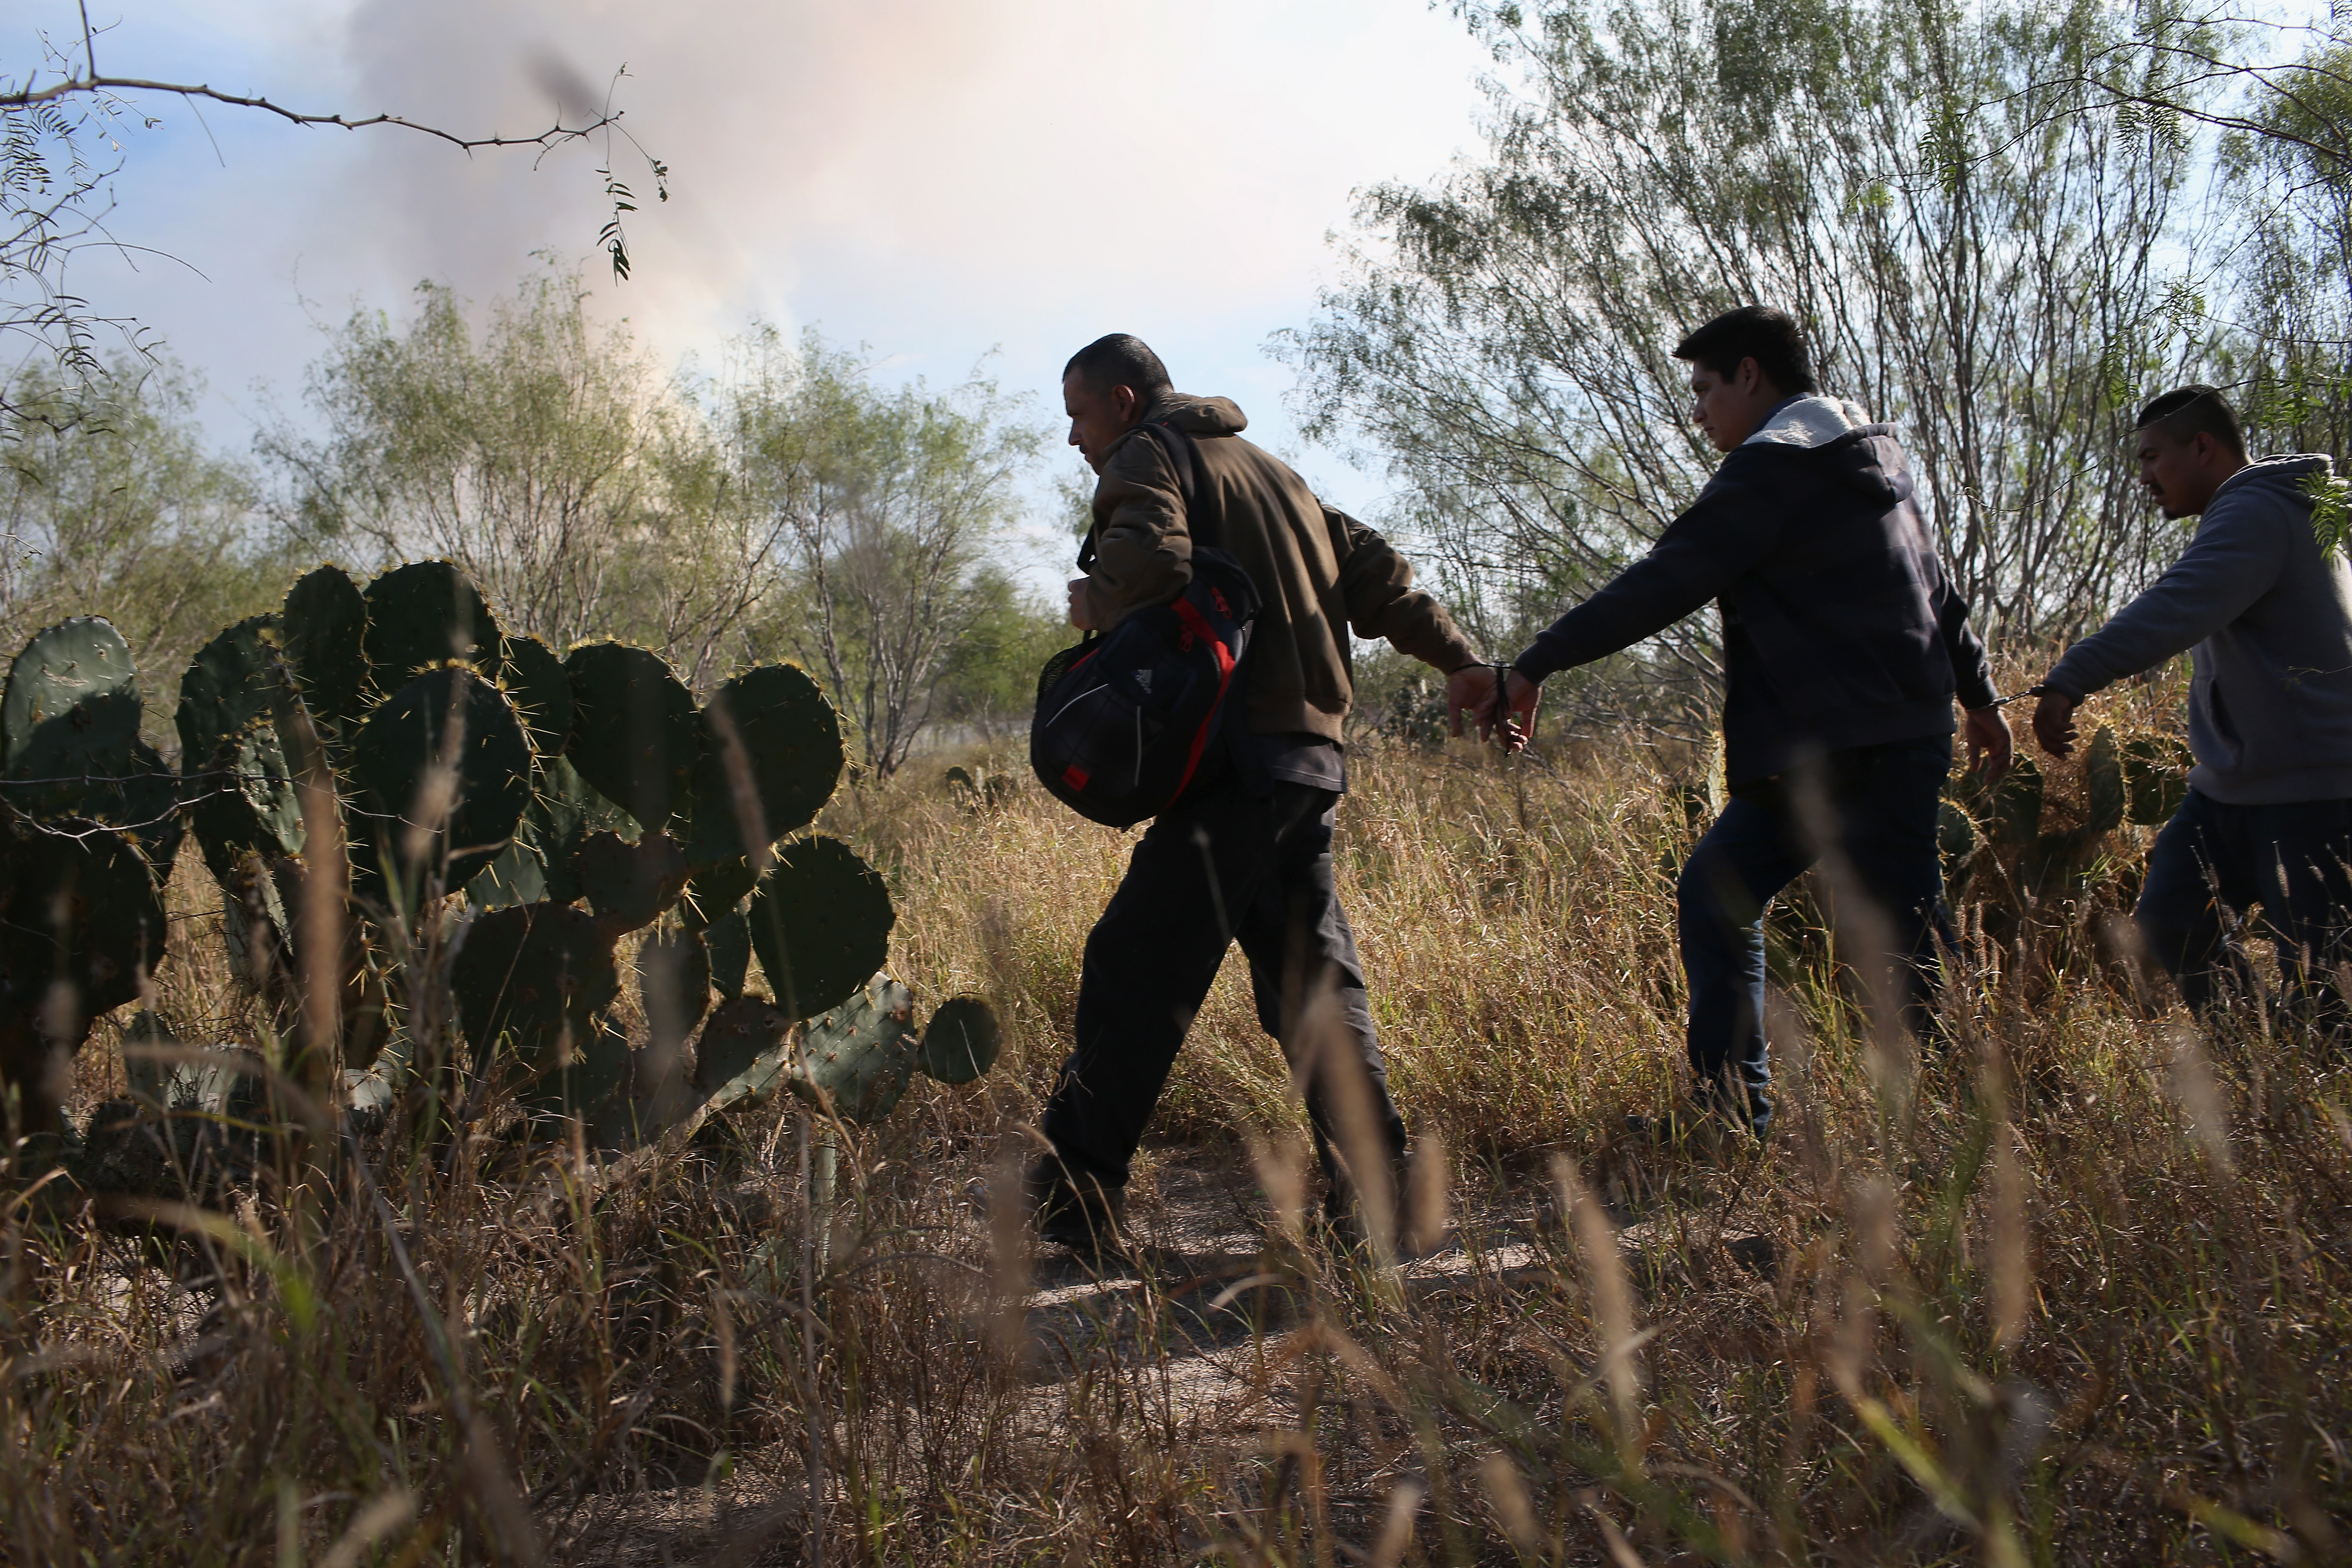 RIO GRANDE CITY, TX - DECEMBER 07: Immigrants walk handcuffed after illegally crossing the U.S.-Mexico border and being caught by the U.S. Border Patrol on December 7, 2015 near Rio Grande City, Texas. Border Patrol agents continue to capture hundreds of thousands of undocumented immigrants, even as the total numbers of those crossing has gone down. (Photo by John Moore/Getty Images)